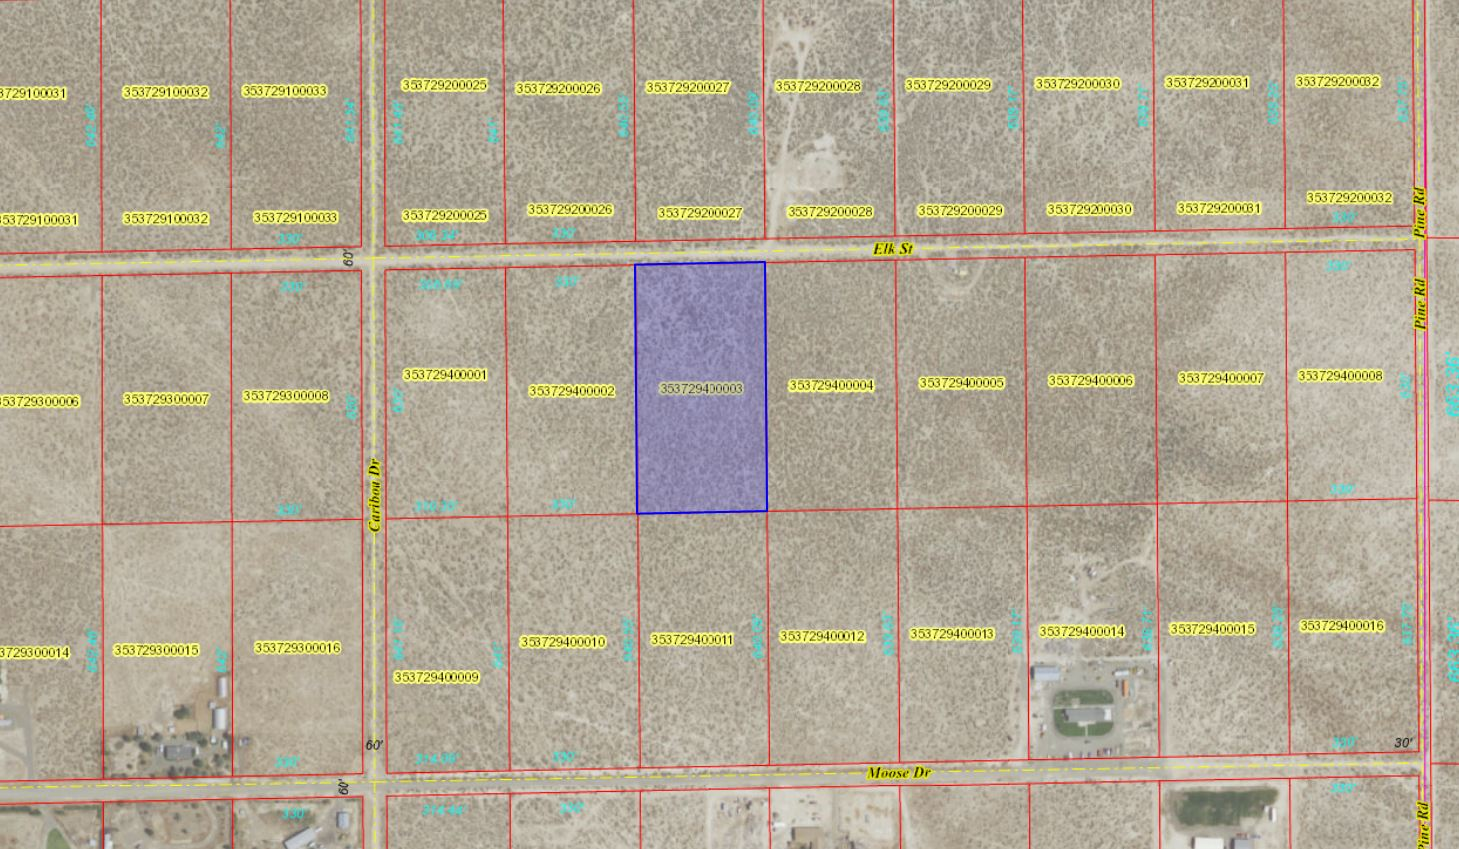 Land for Sale in Winnemucca